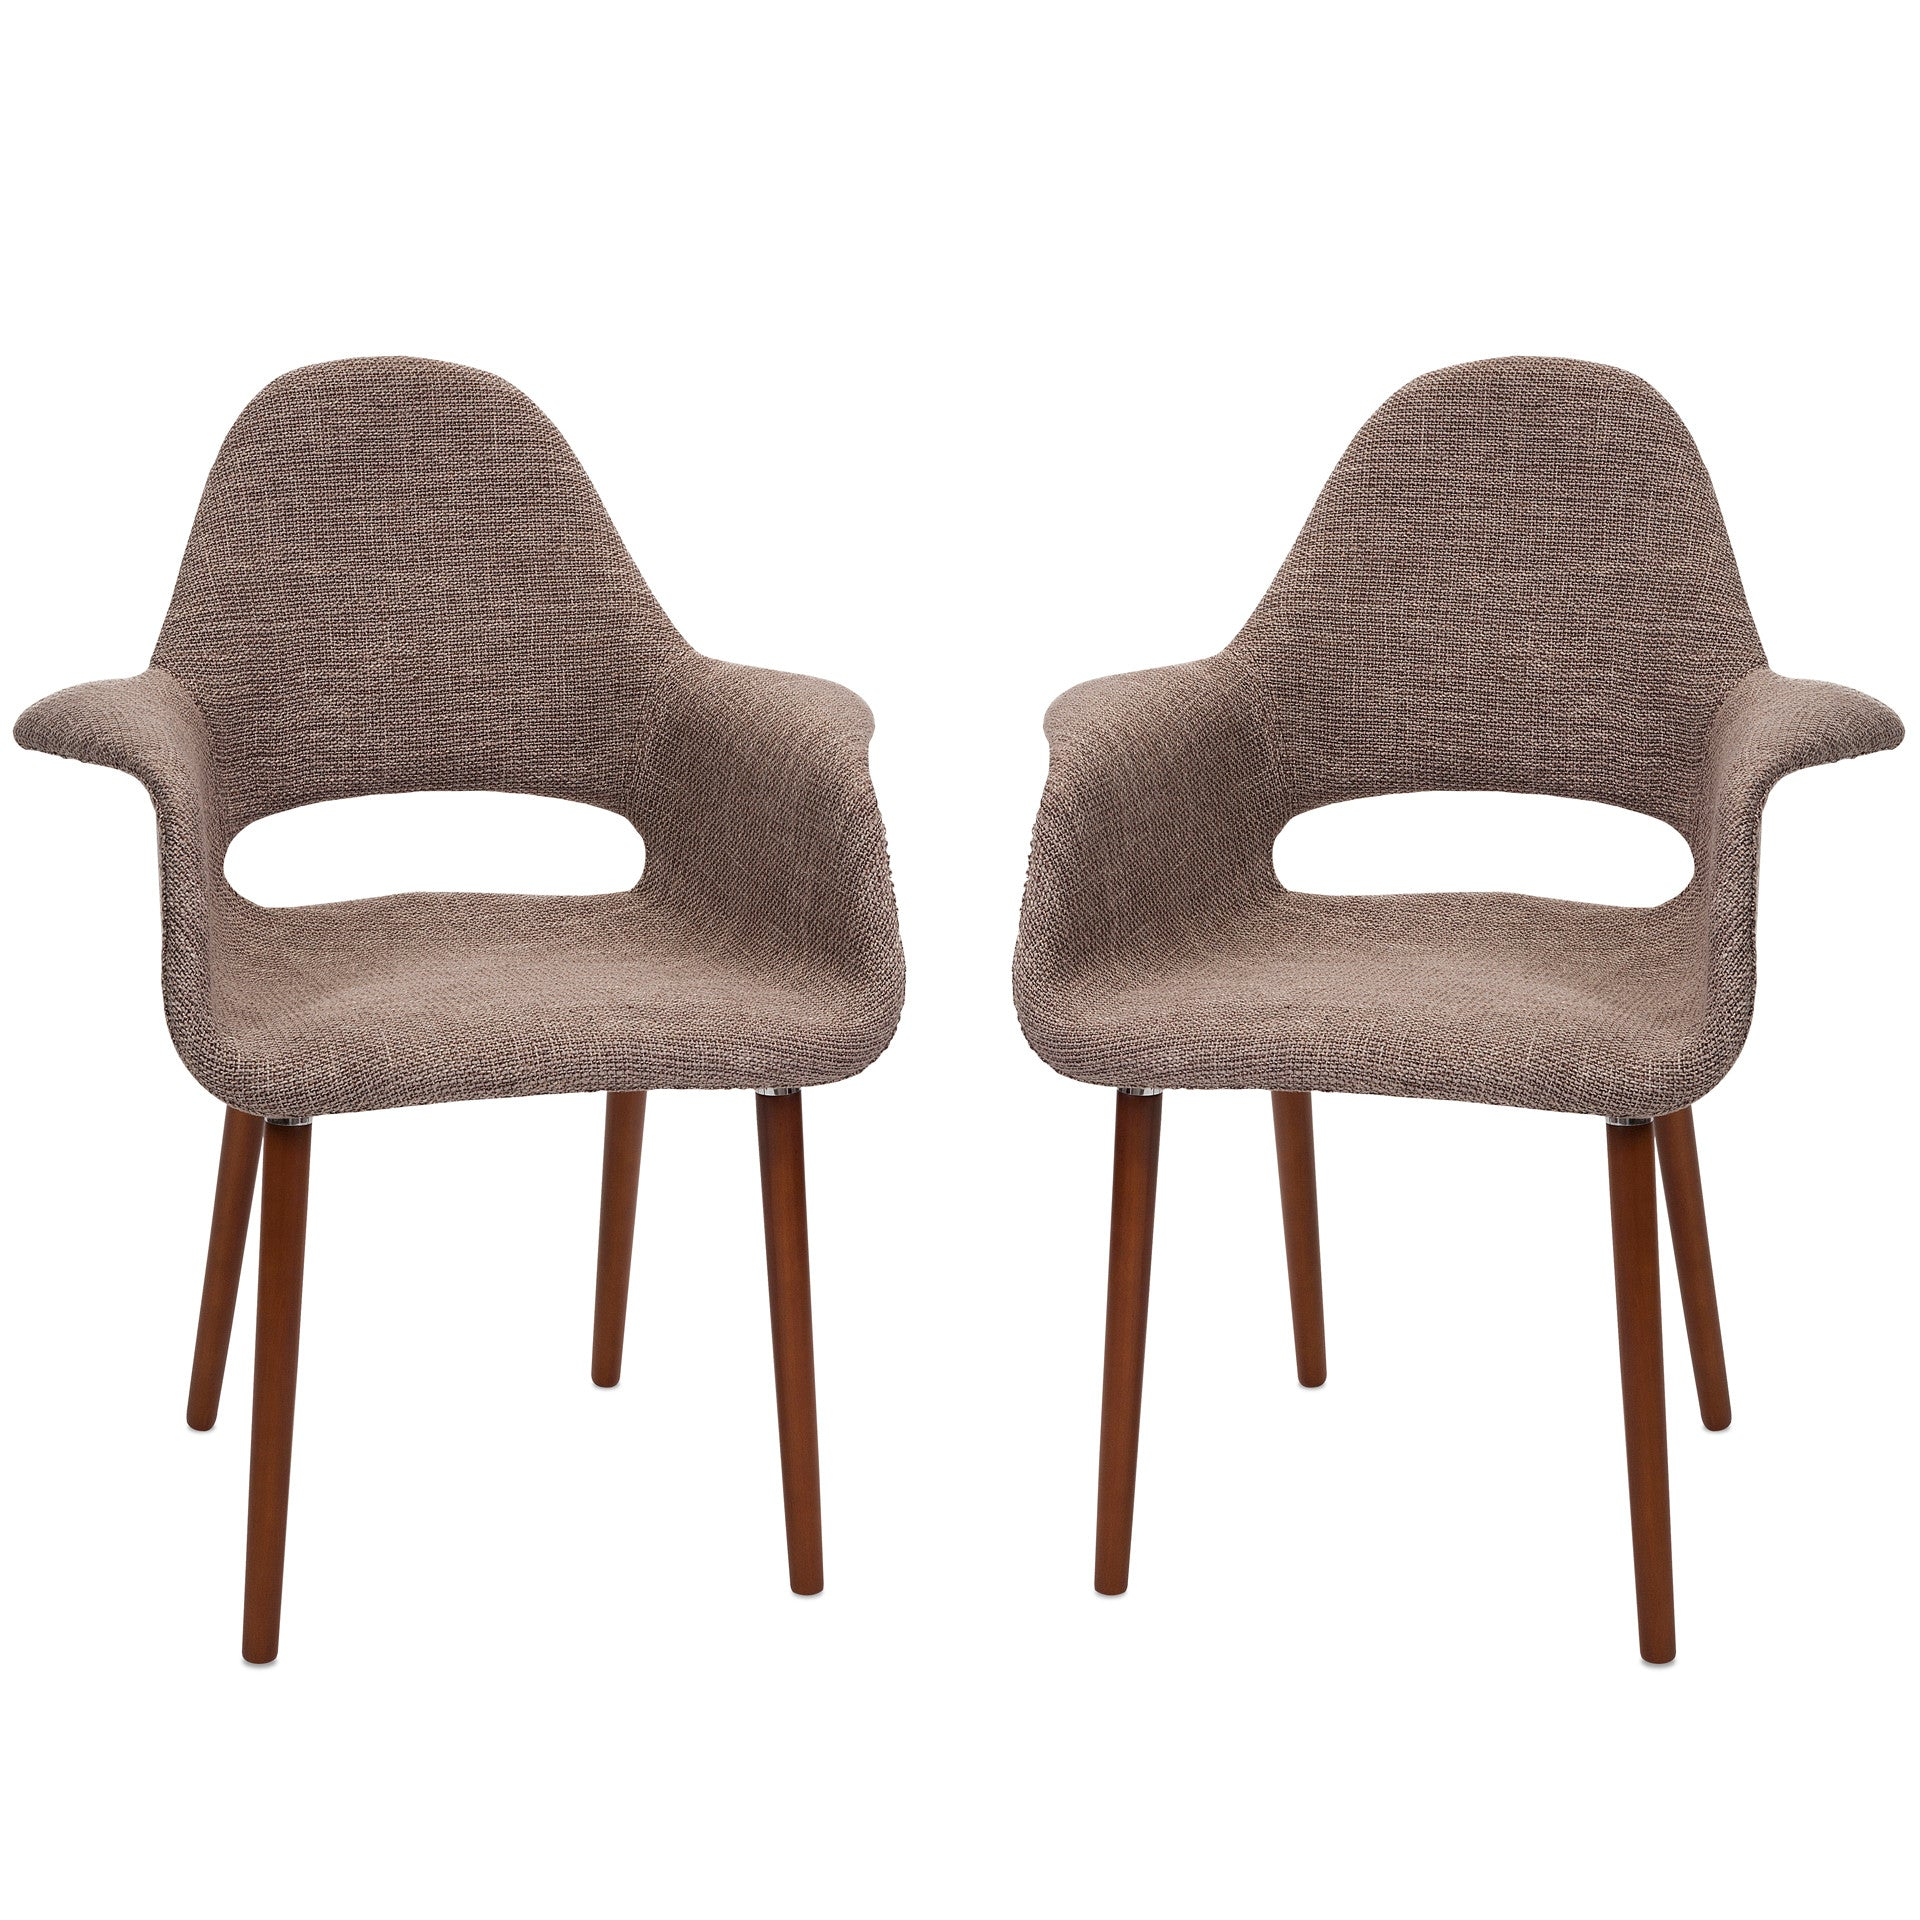 Modern Retro Chairs modern chairs - woodwaves